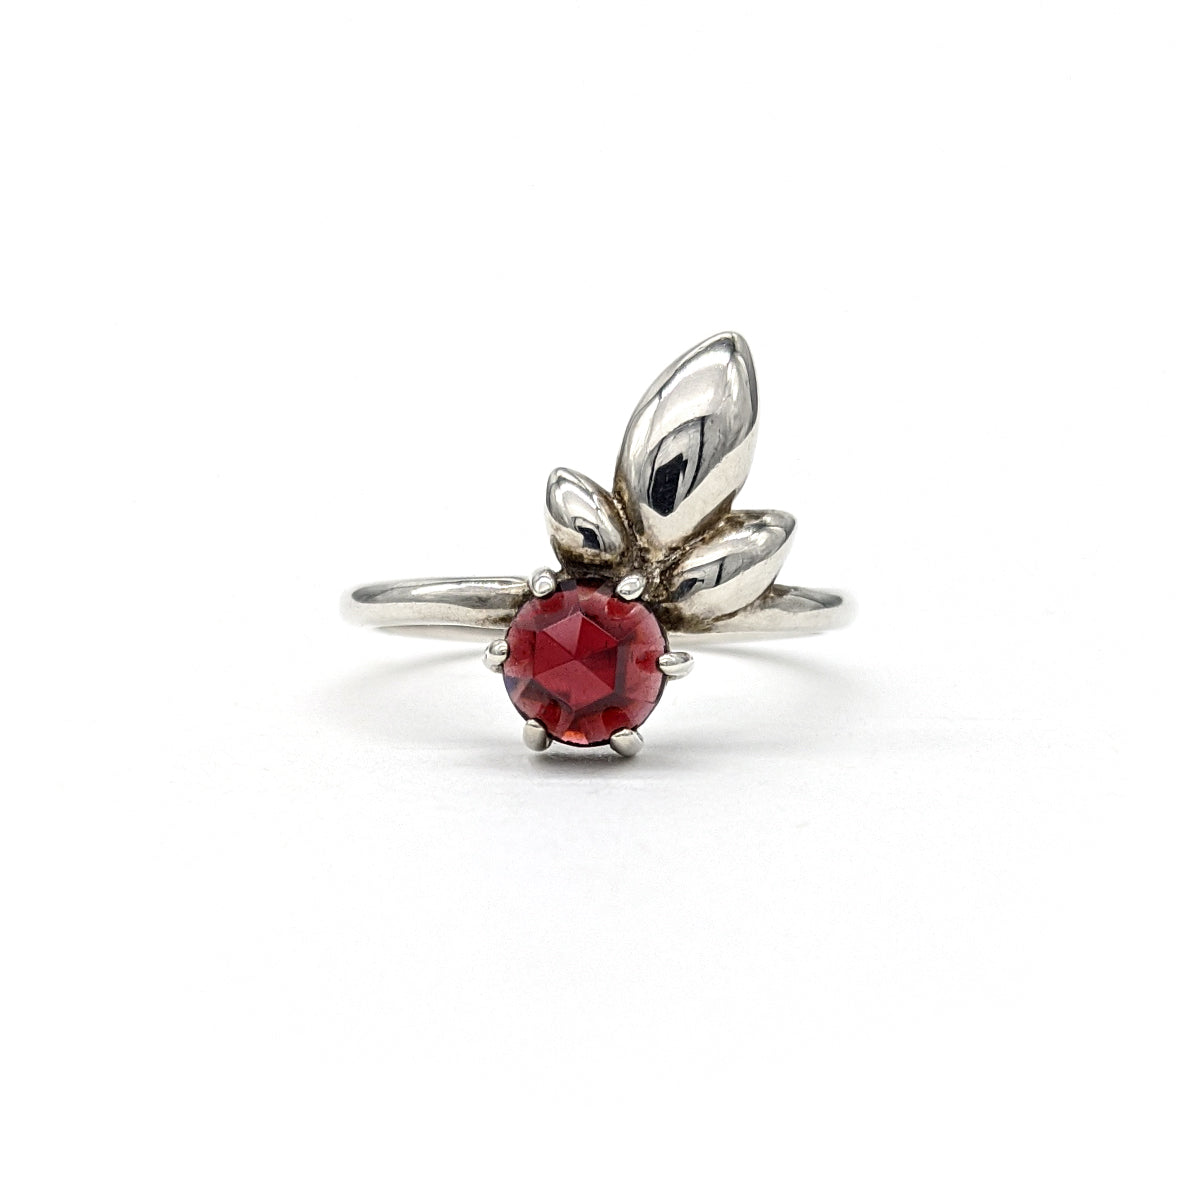 Lily Leaf Ring in Garnet - Size 7.50